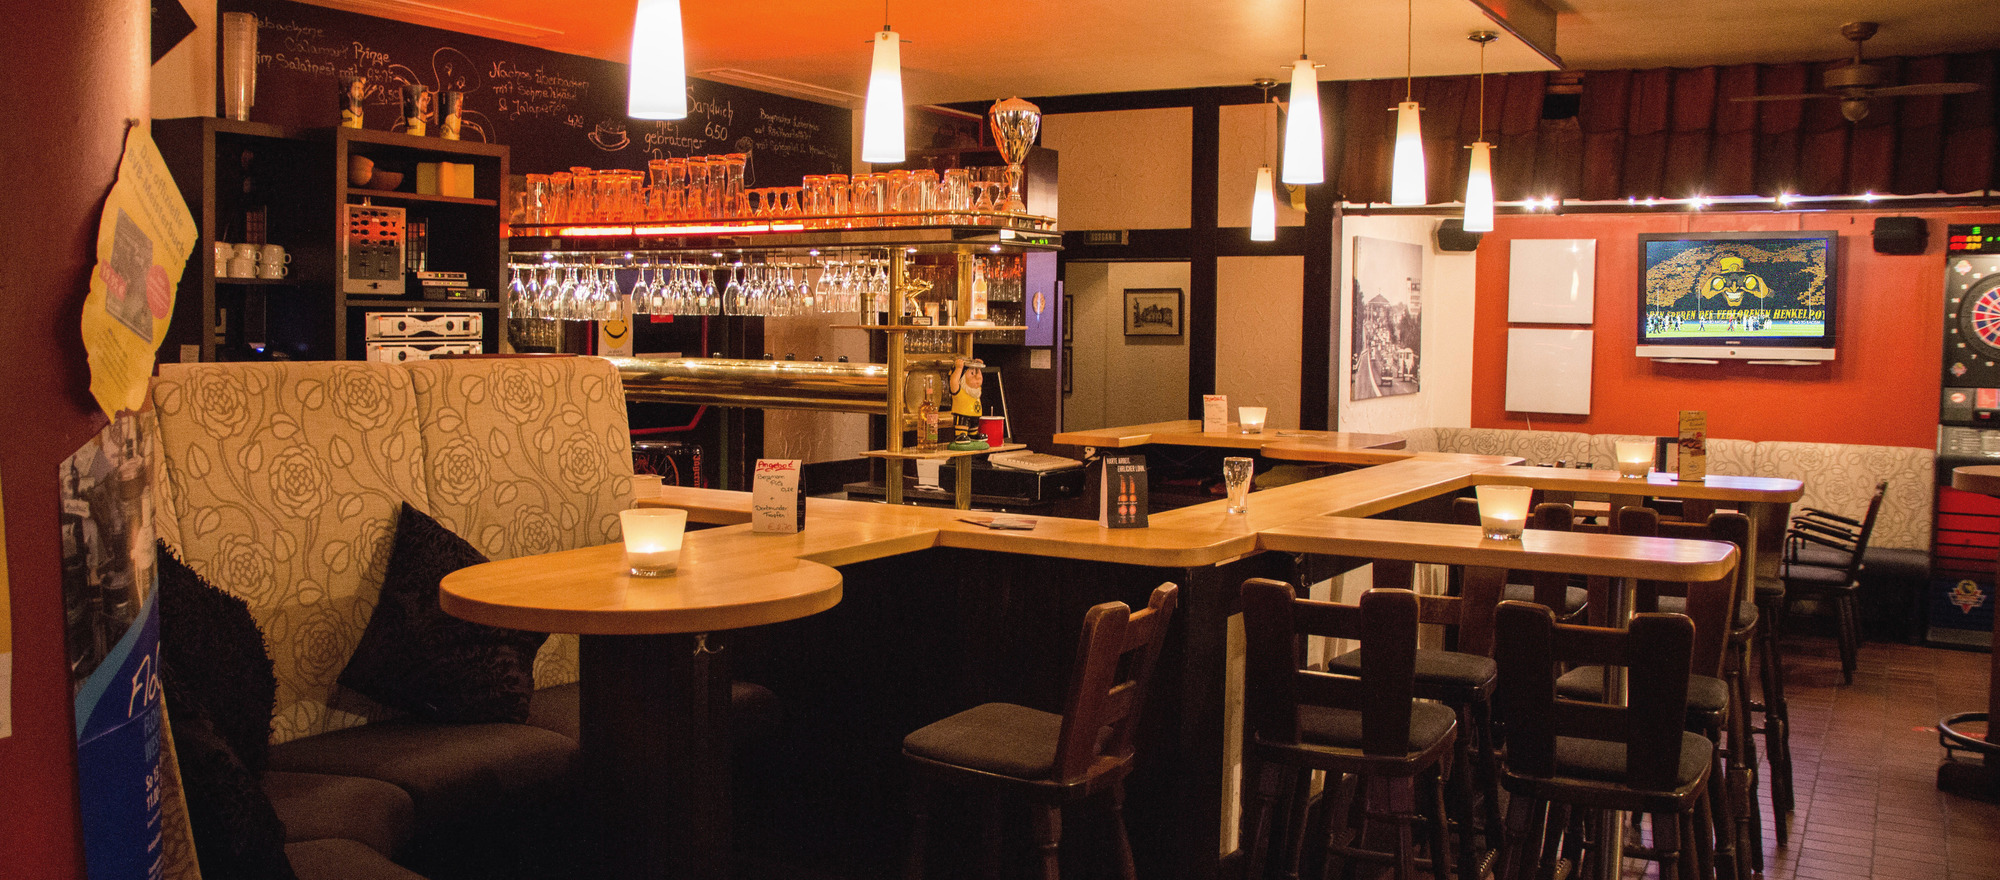 Unforgettable evening events at the Alte Gasse bar in the 4-star Ringhotel Drees in Dortmund